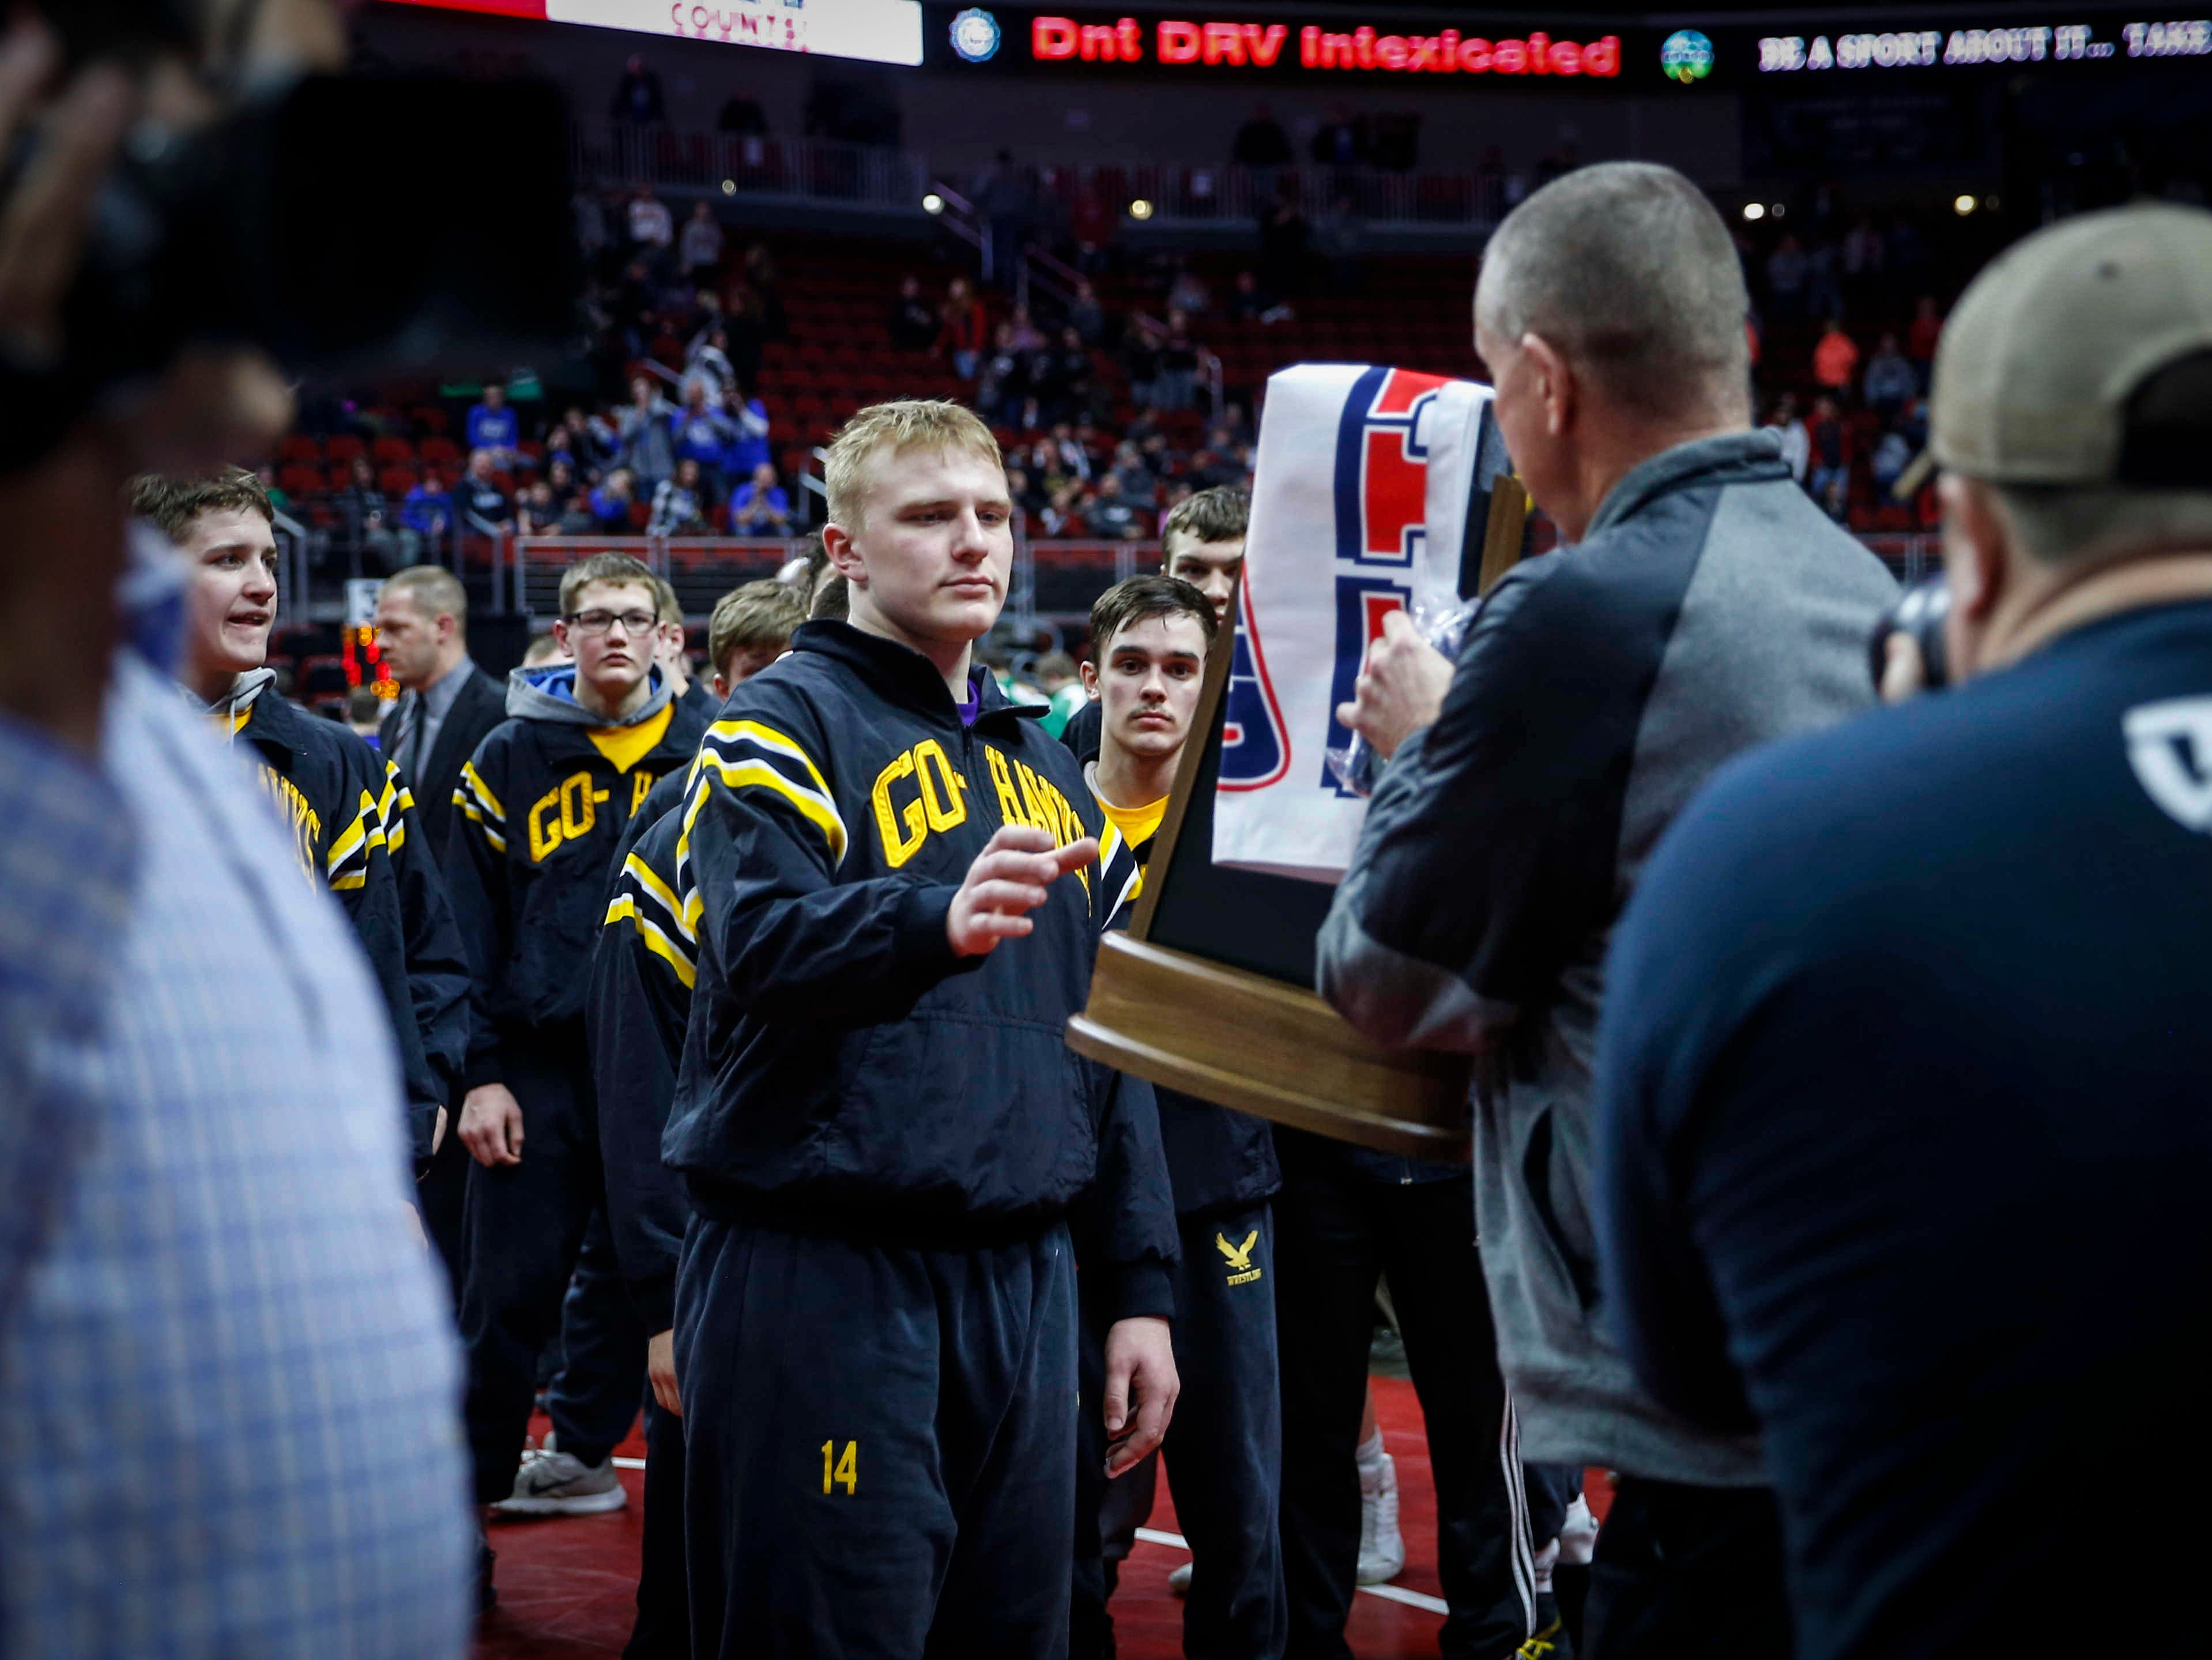 Members of the Waverly-Shell Rock wrestling team take the Class 3A runner up trophy during the 2019 Iowa high school dual wrestling state tournament on Wednesday, Feb. 13, 2019, at Wells Fargo Arena in Des Moines.